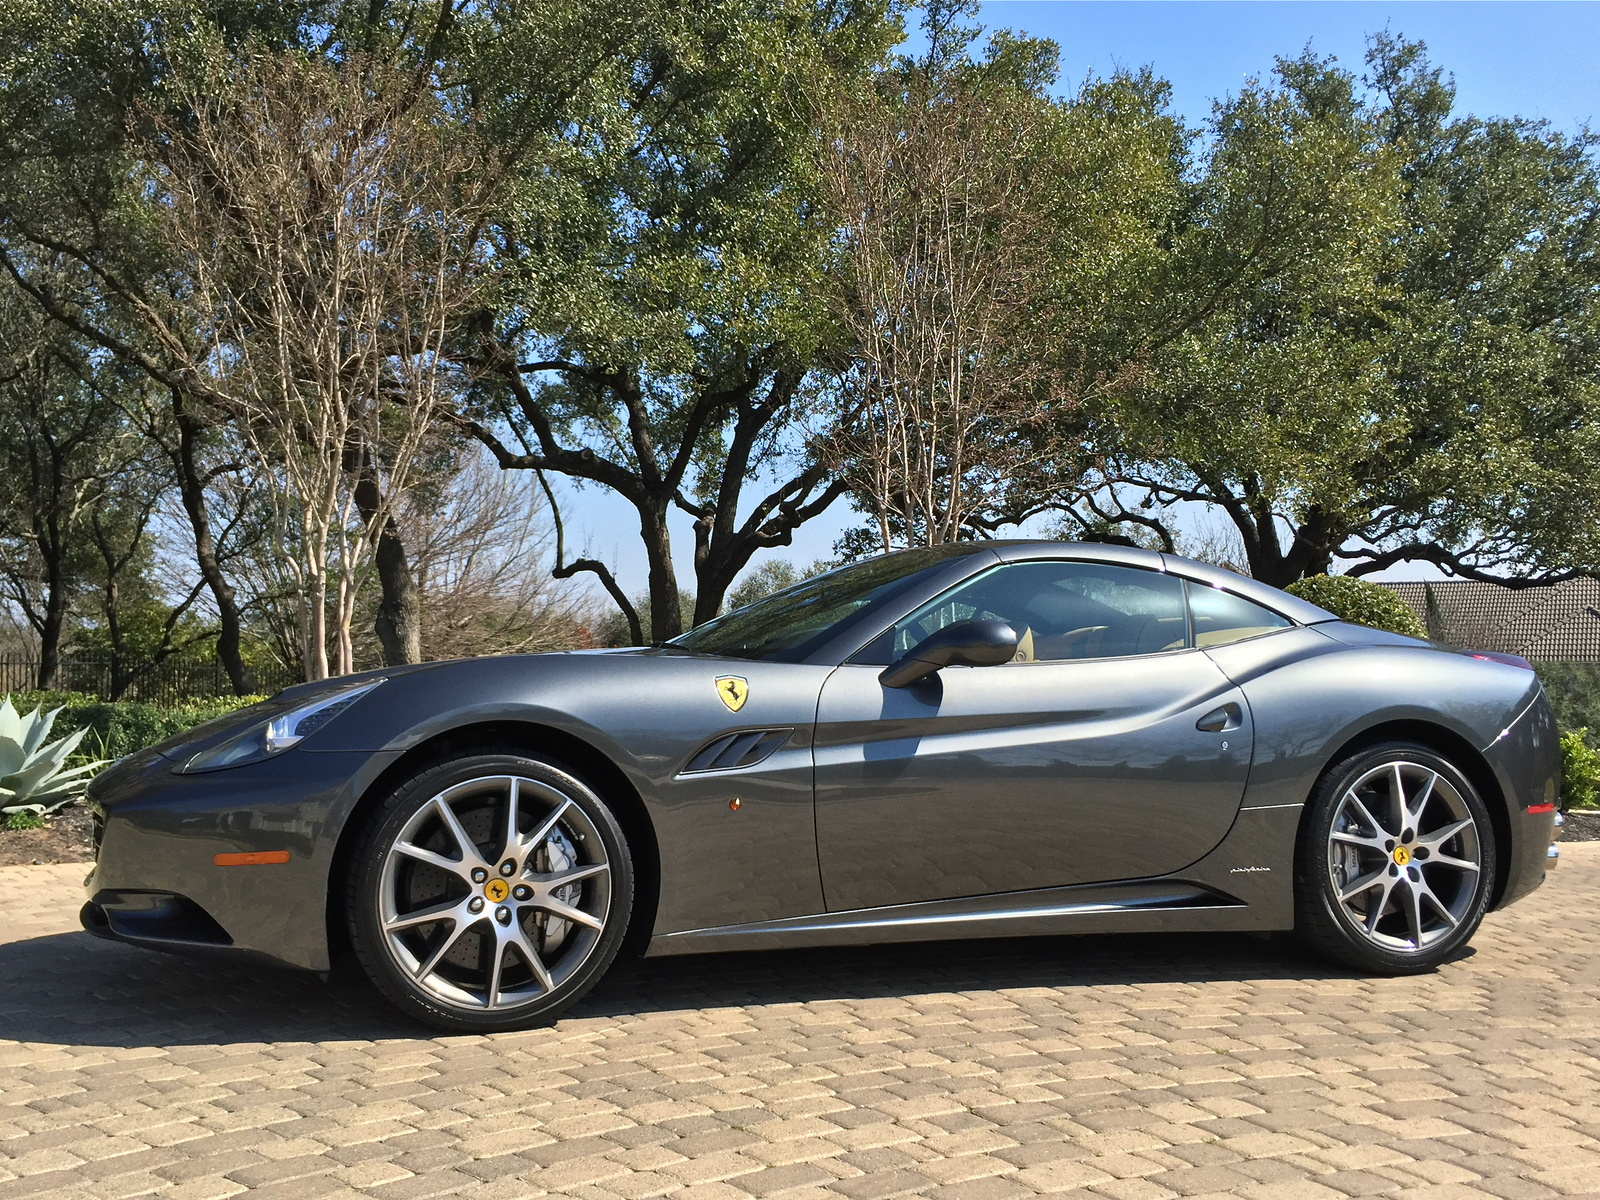 Ferrari California Gt Convertible Pic X on Used Lexus Is Convertible